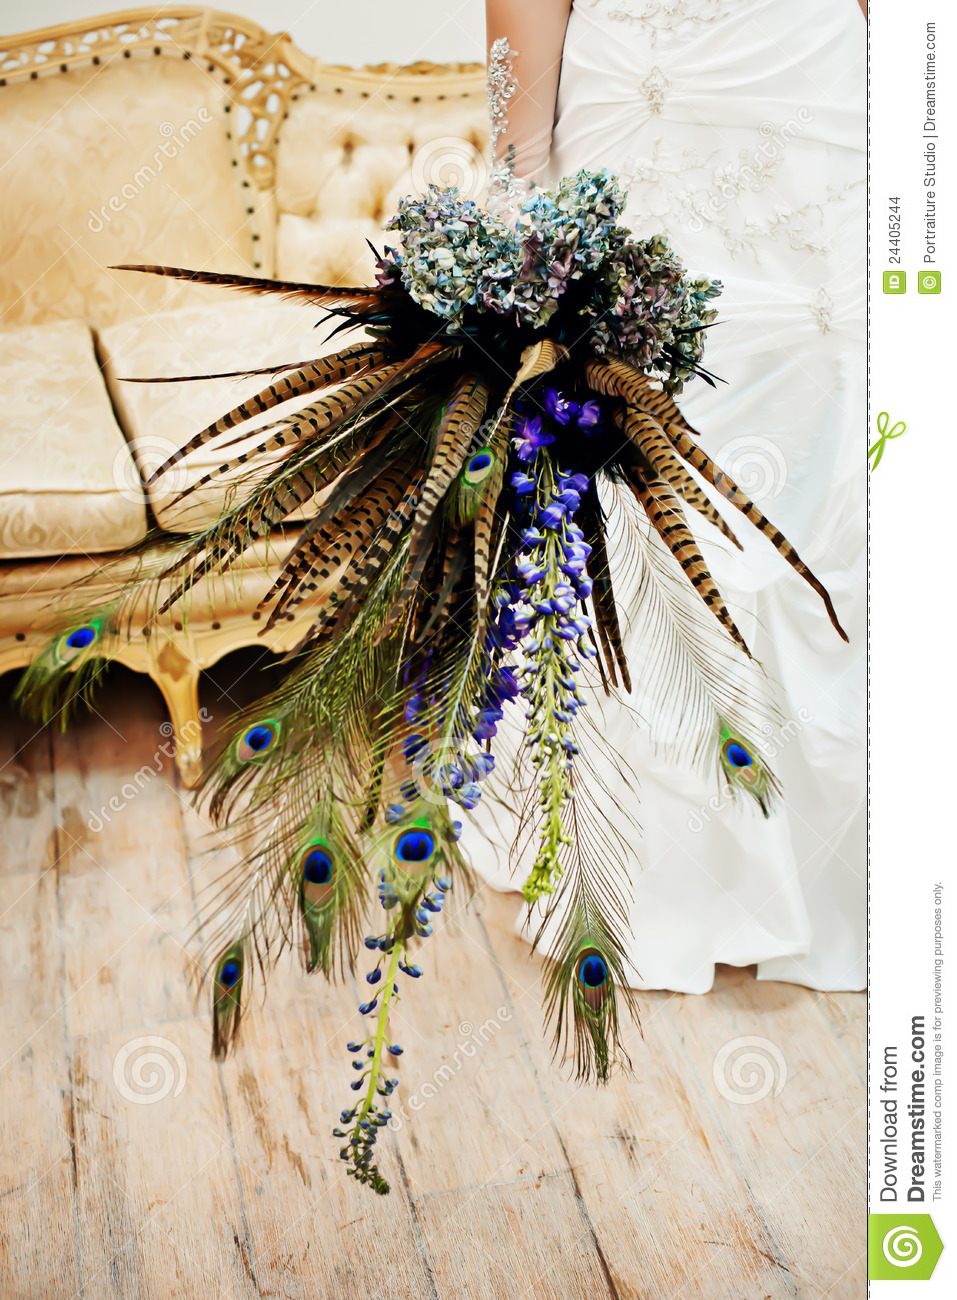 Wedding Bouquet With Peacock Feathers Stock Photo Image